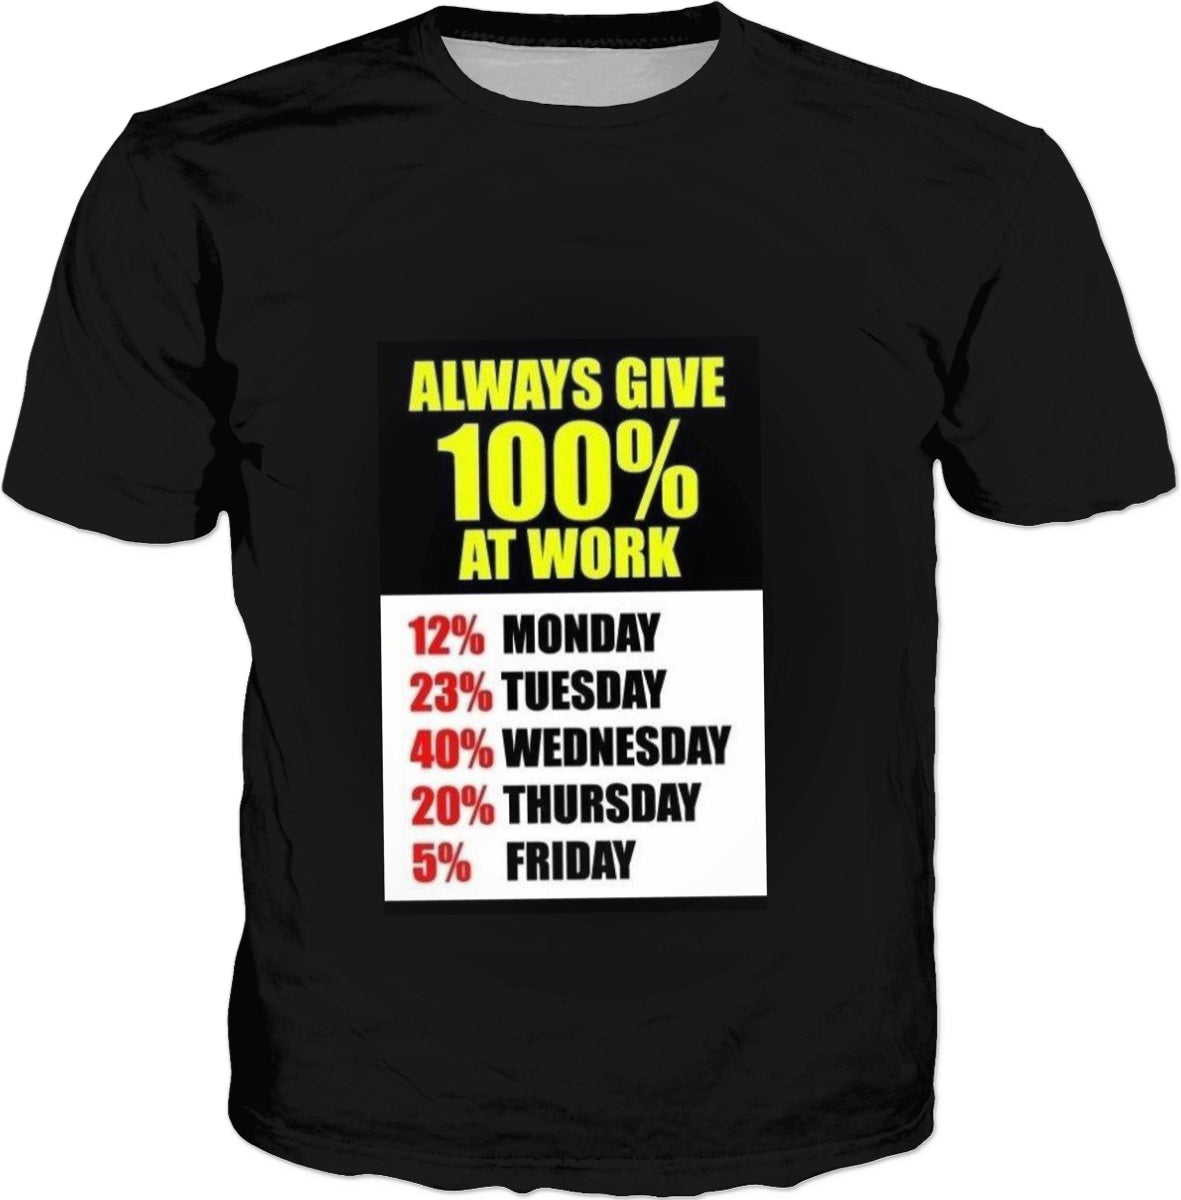 100% Work Adult t-Shirt